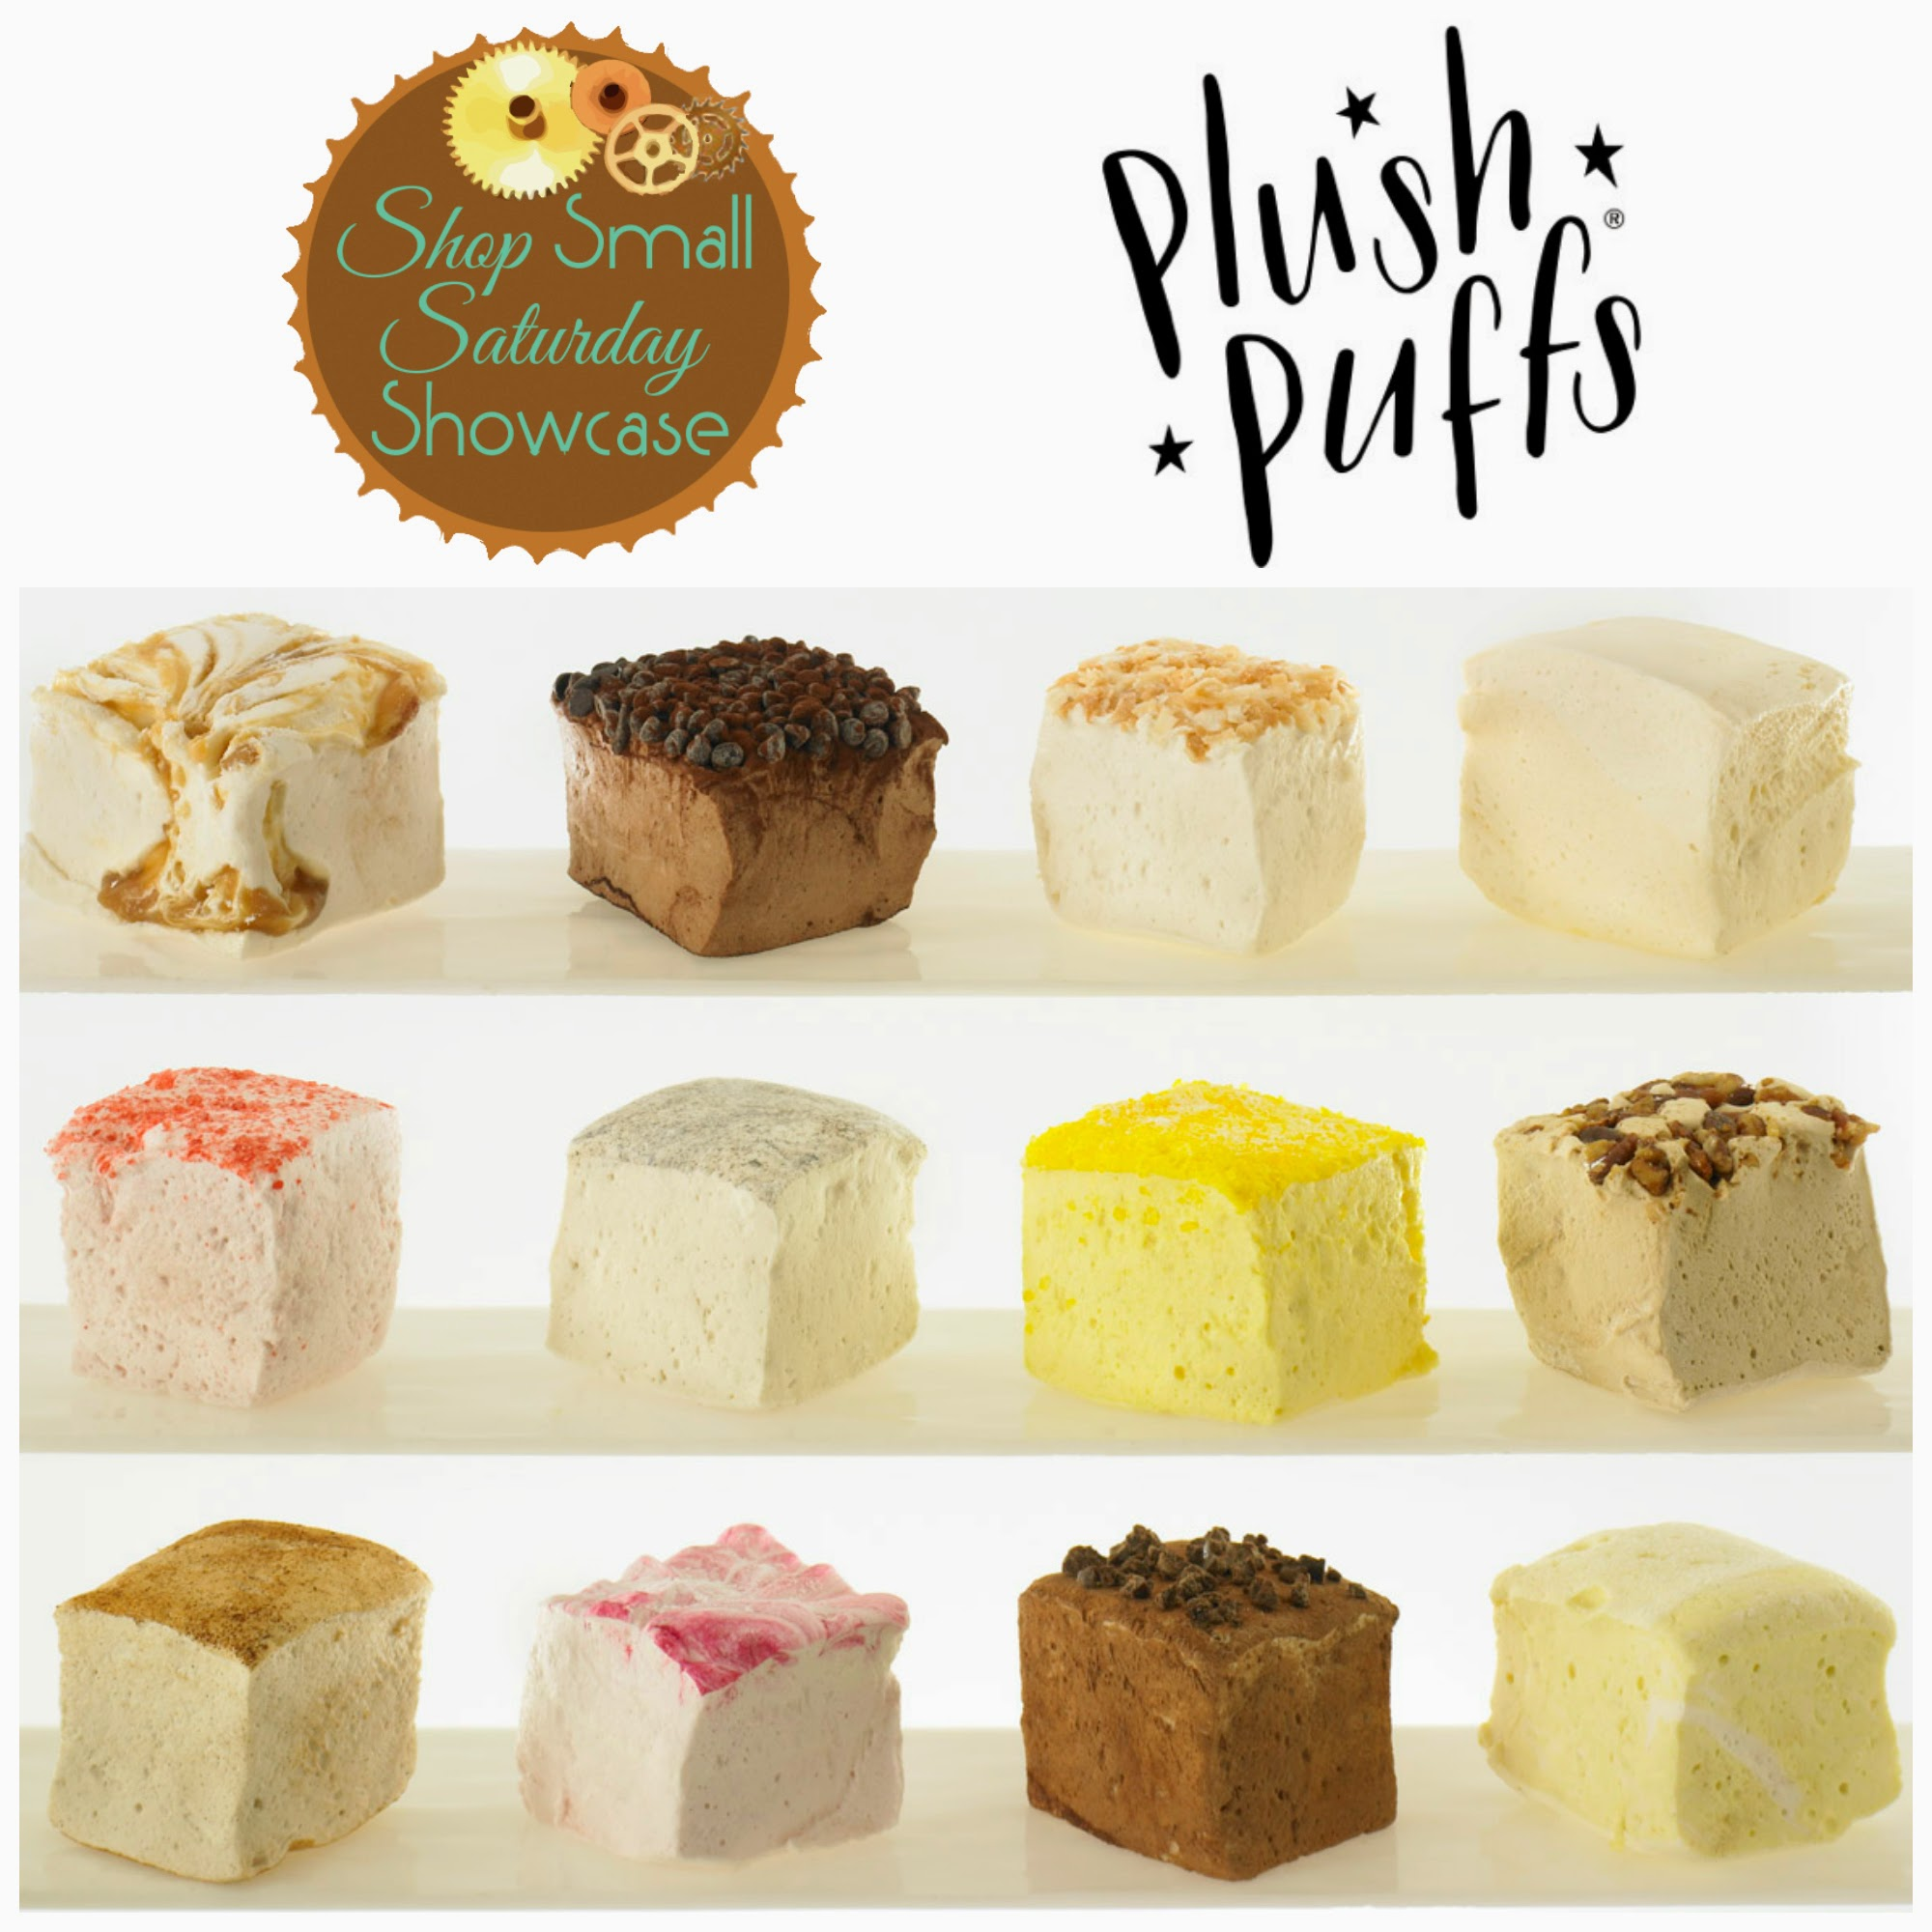 Plush Puffs on Shop Small Saturday Showcase at Diane's Vintage Zest!